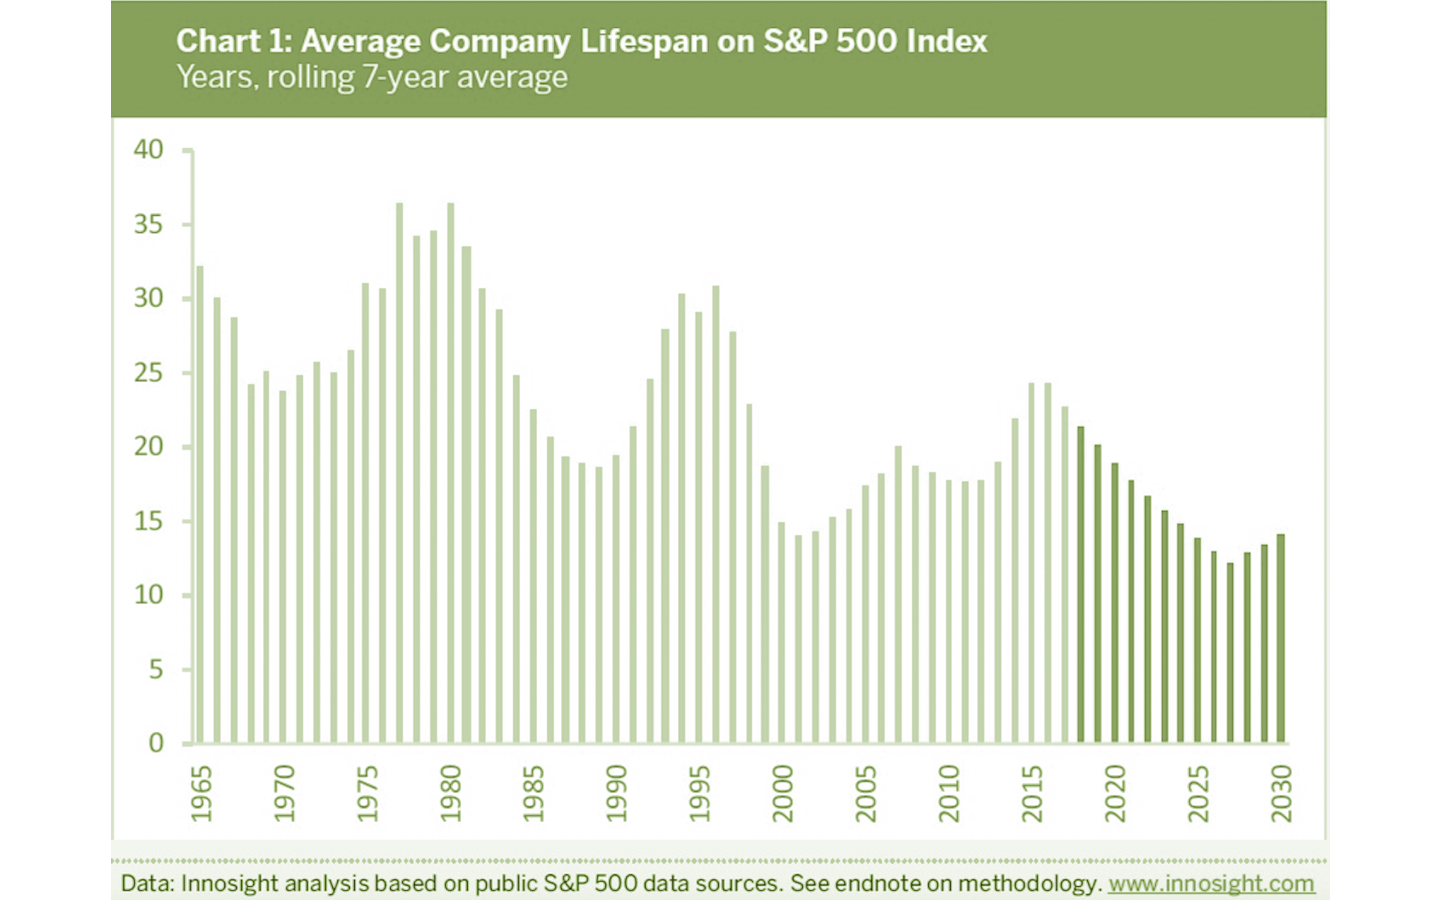 """Imagine a world in which the average company lasted just 12 years on the S&P 500. That's the reality we could be living in by 2027, according to Innosight's biennial corporate longevity forecast."""